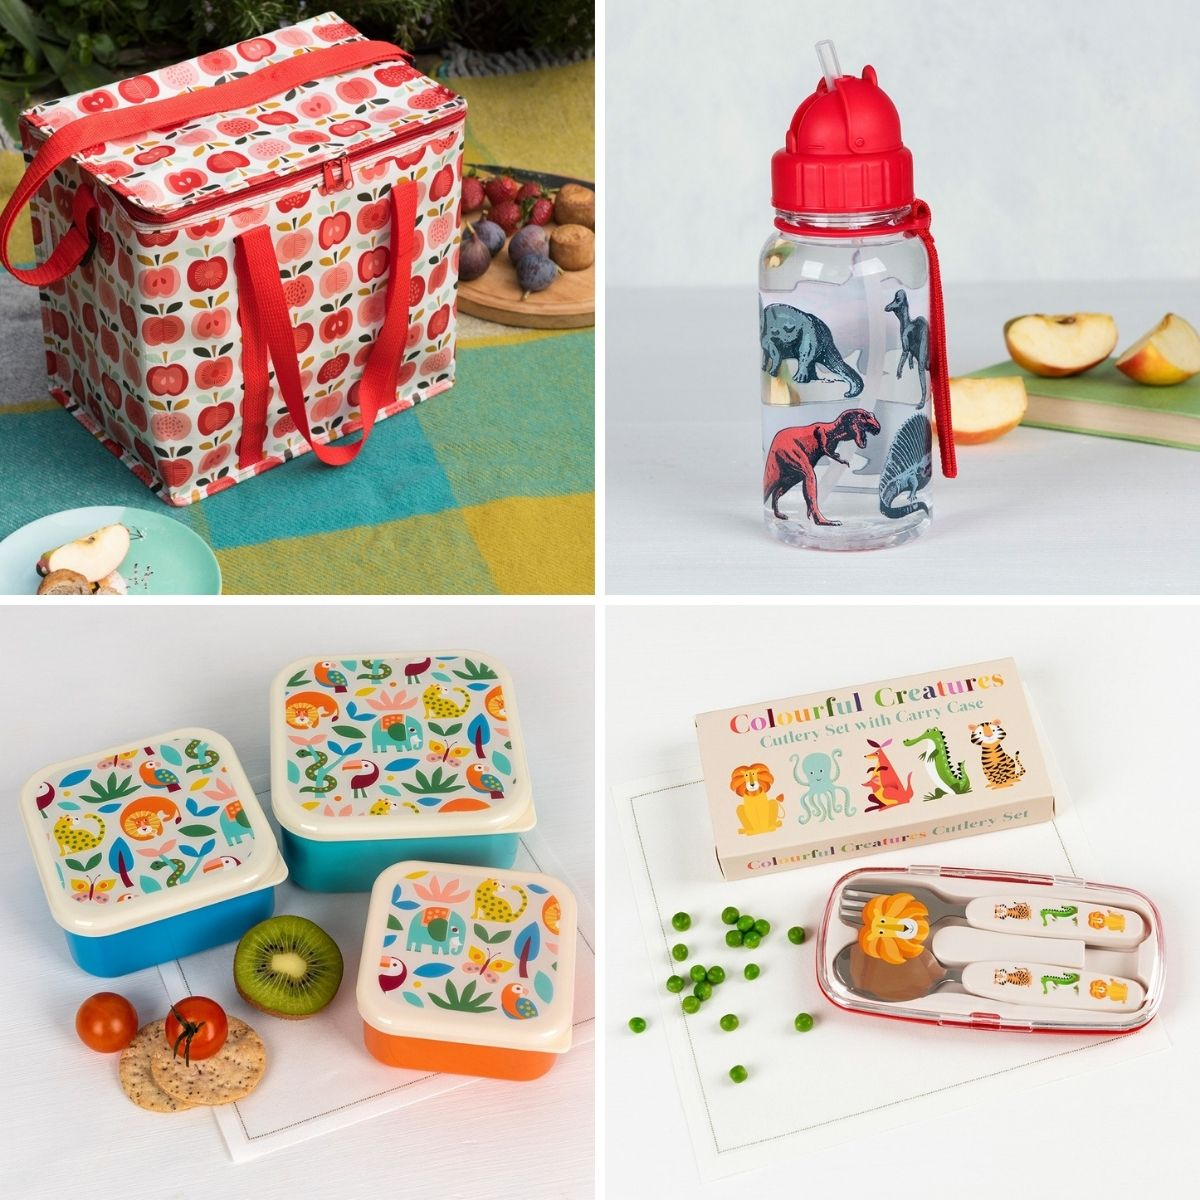 Lunch accessories for family days out